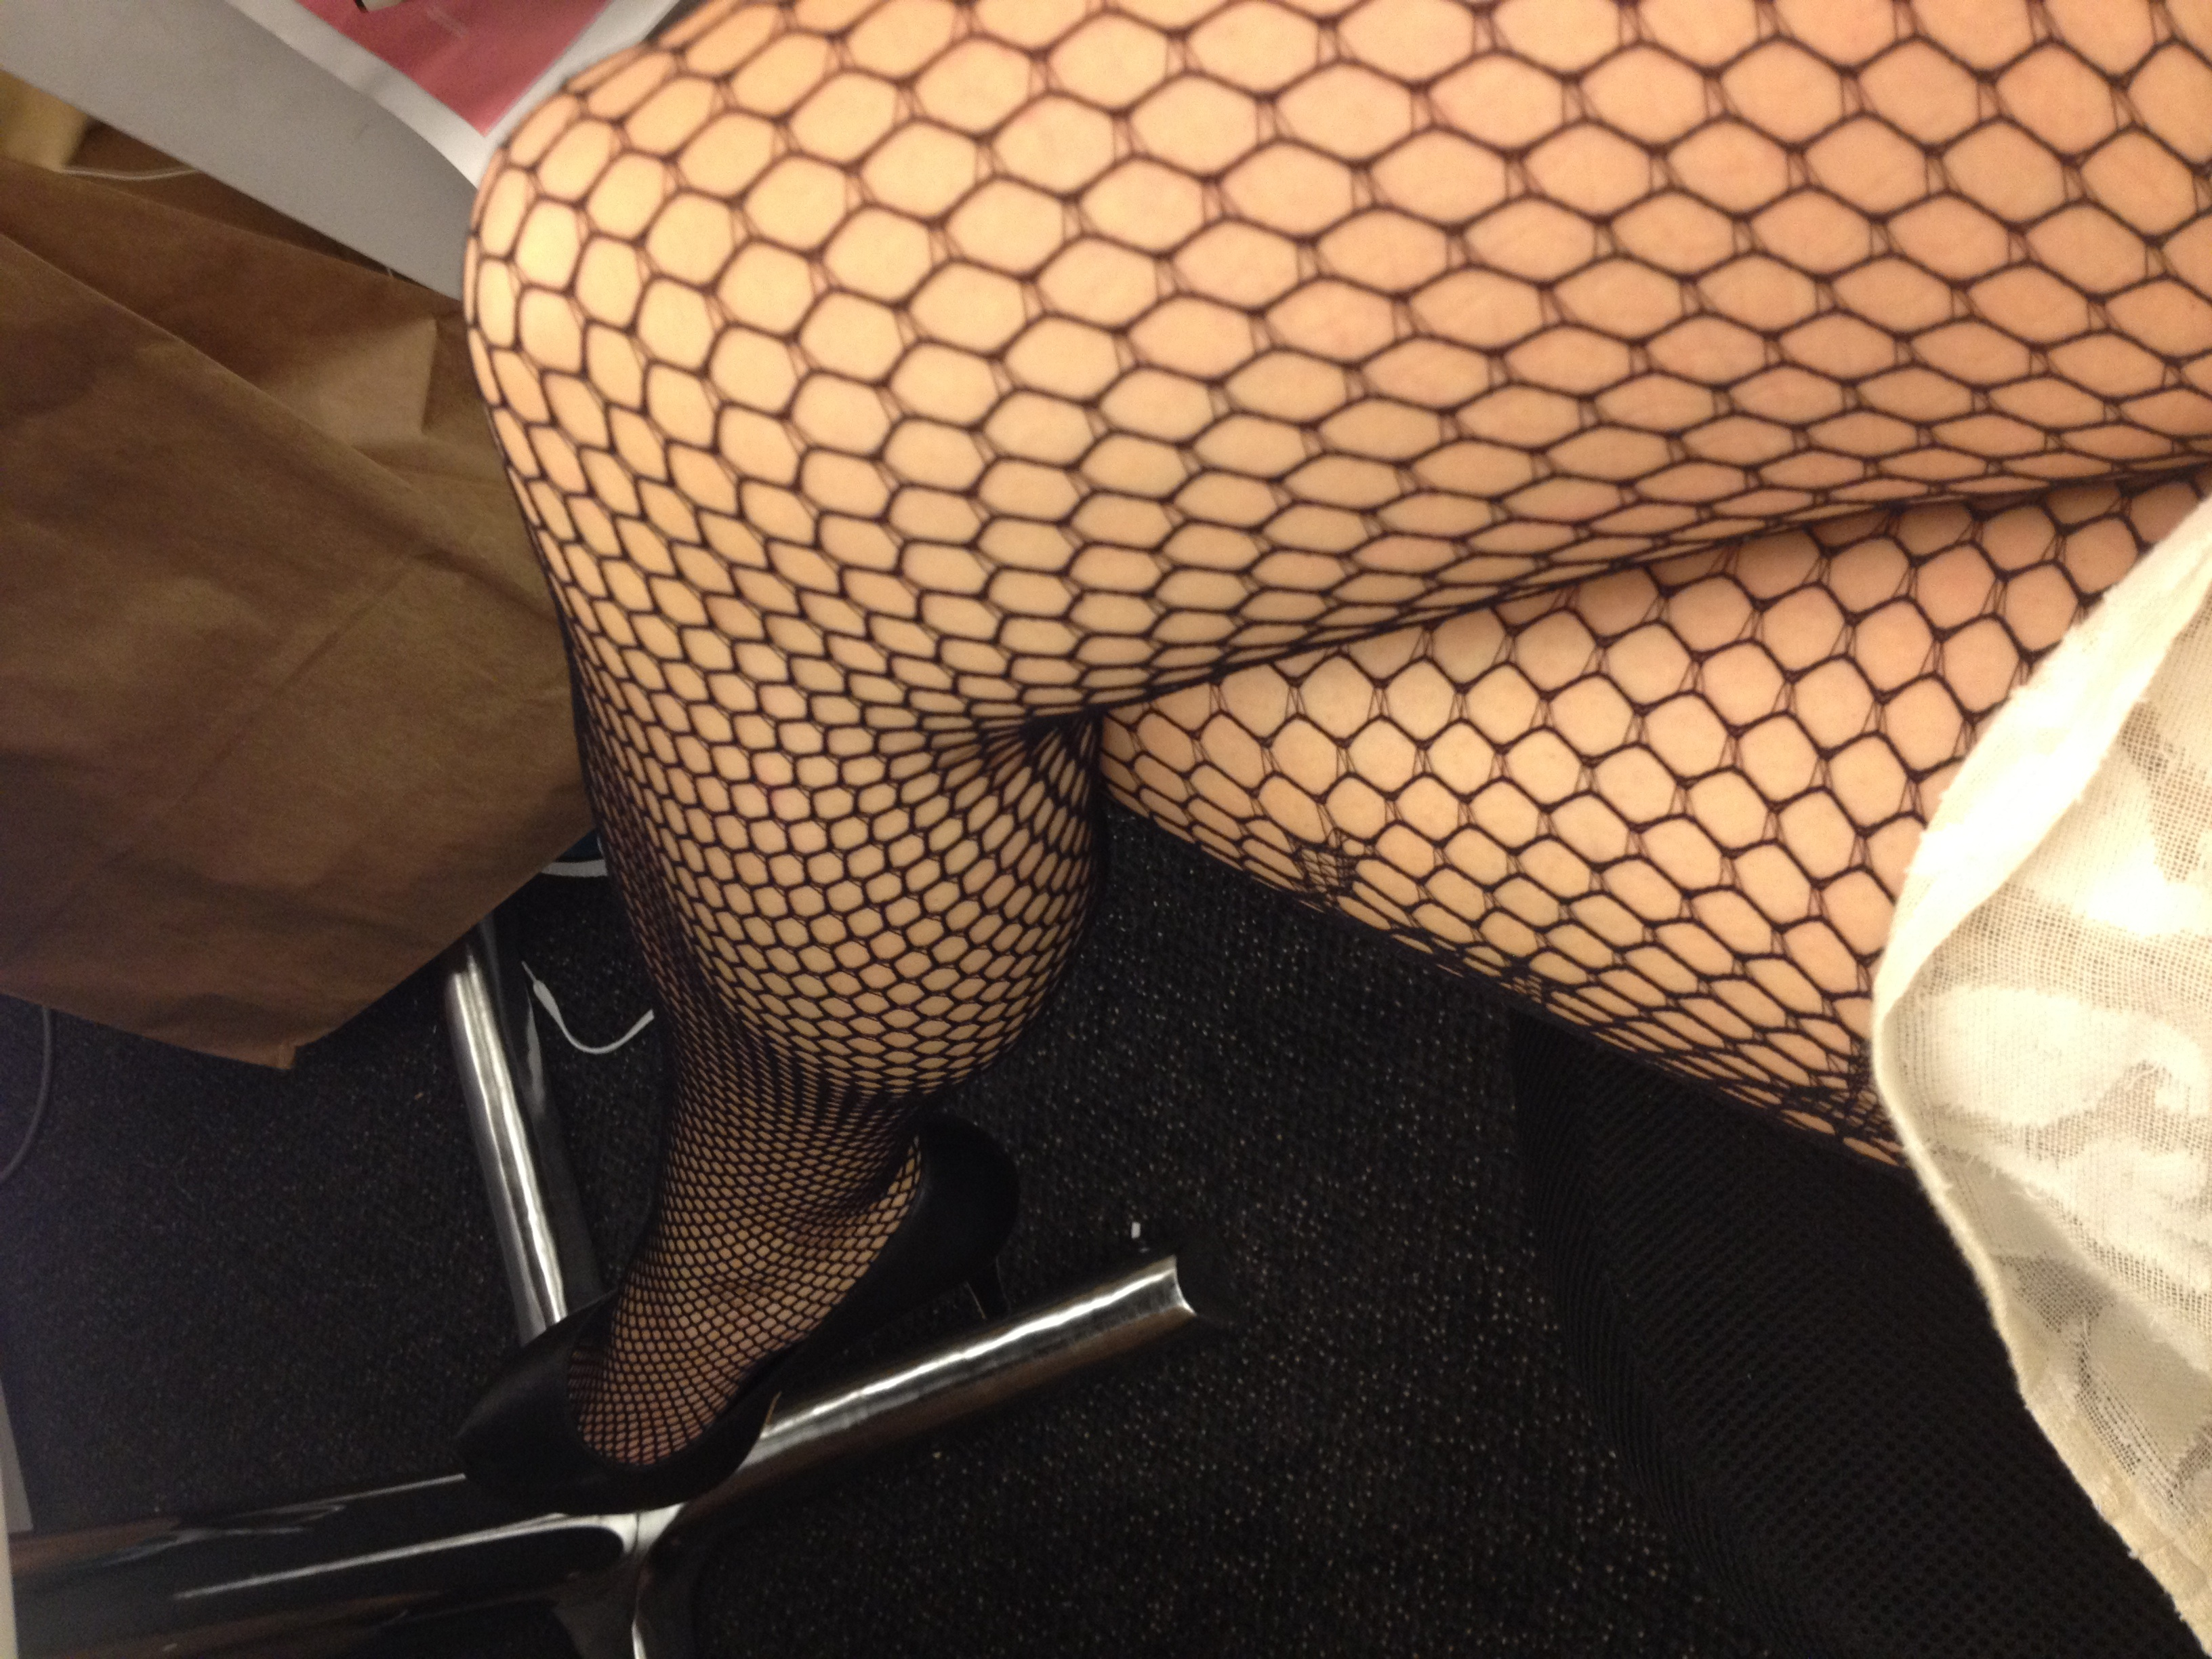 My Quest For Sugar Freedom: Fishnets and High Heels | travel with ...